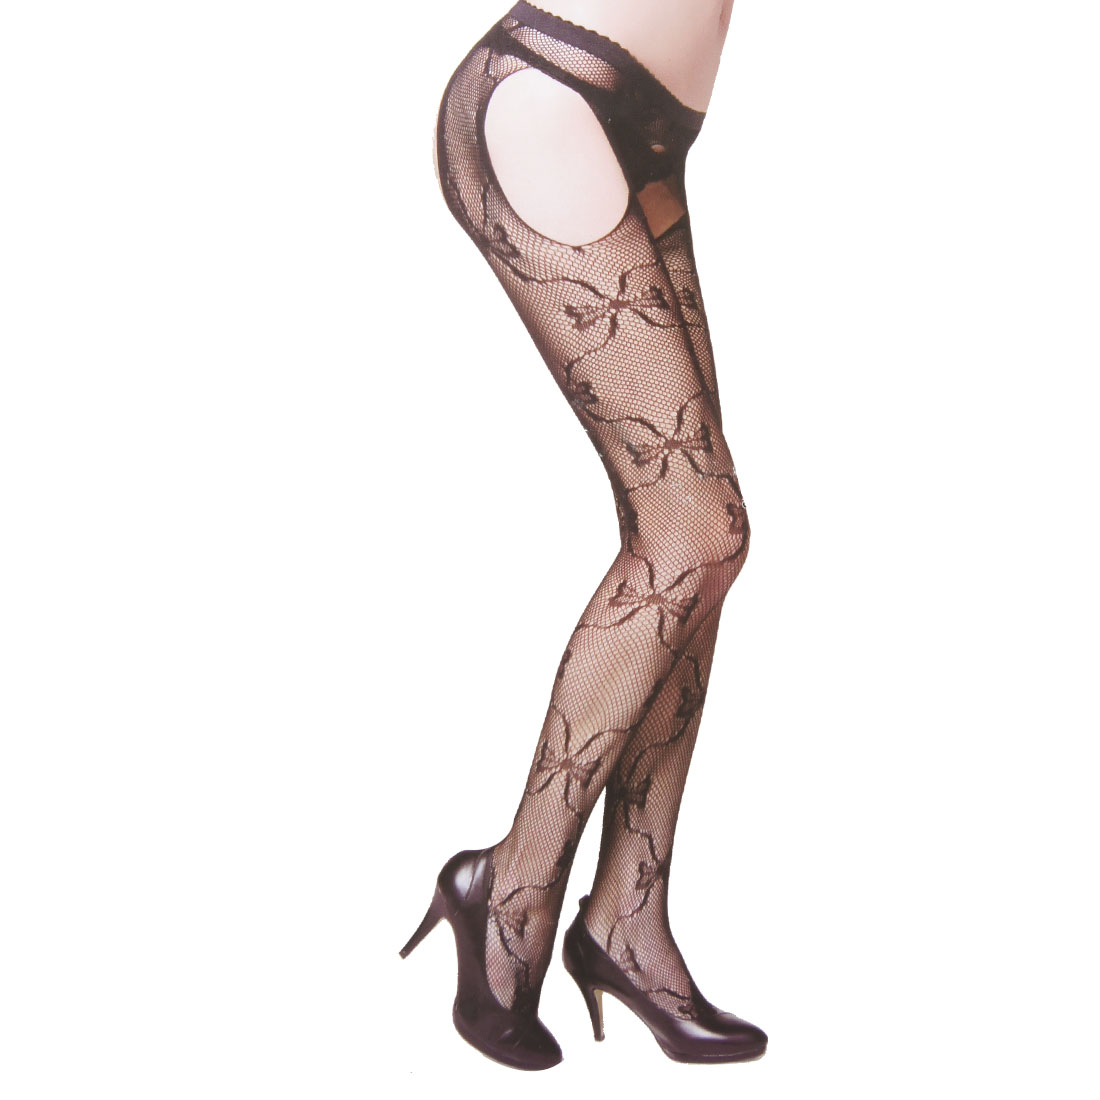 Ladies Cut Out Open Crotch Black Sexy Fishnet Pantyhose XS